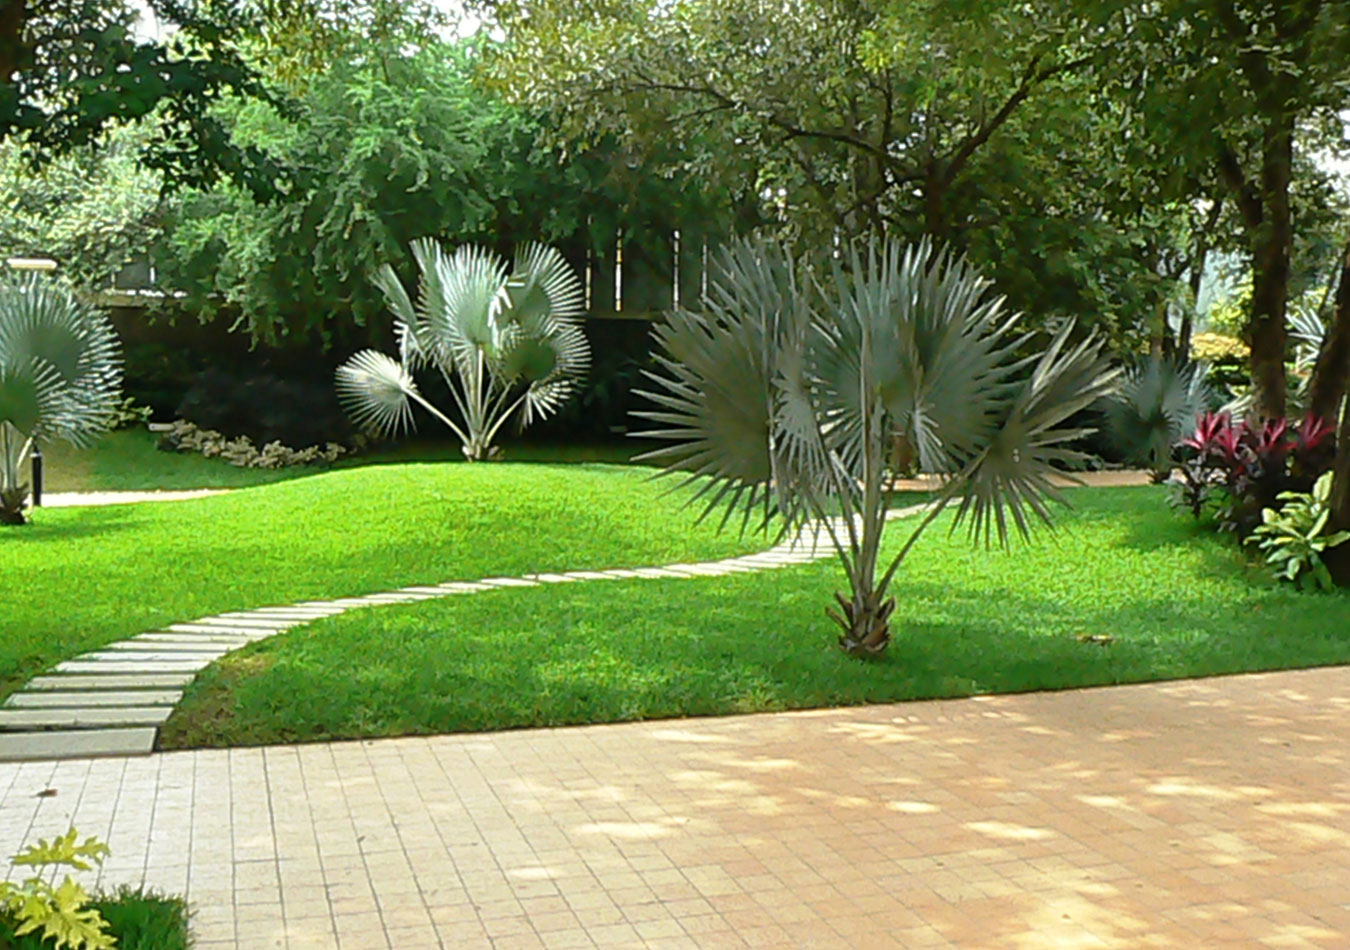 Landscape architecture projects landscape garden design for Kerala garden designs